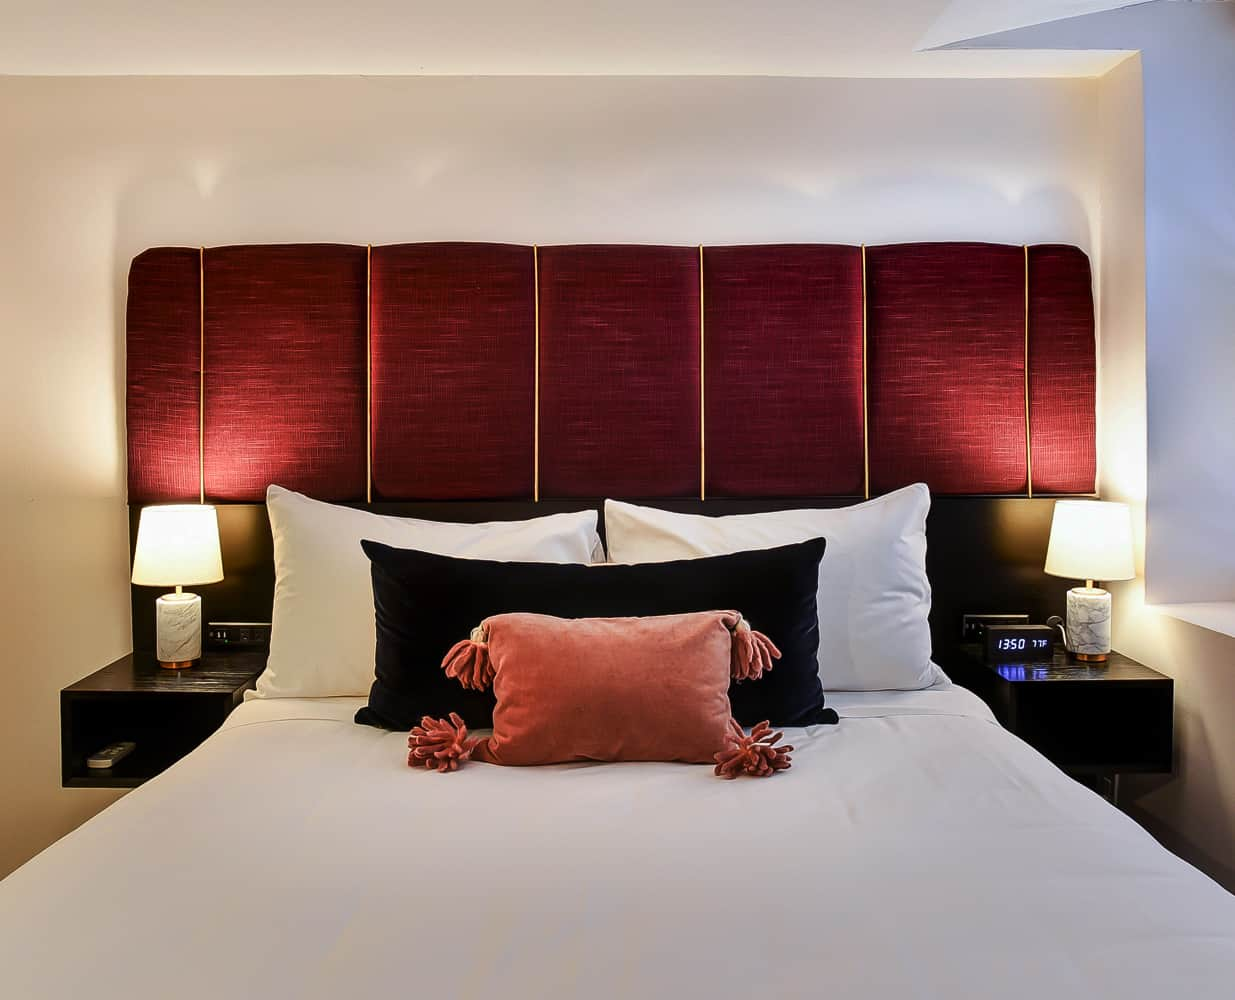 Dupont Circle Embassy Inn by FOUND - Rooms - Superior Queen Room